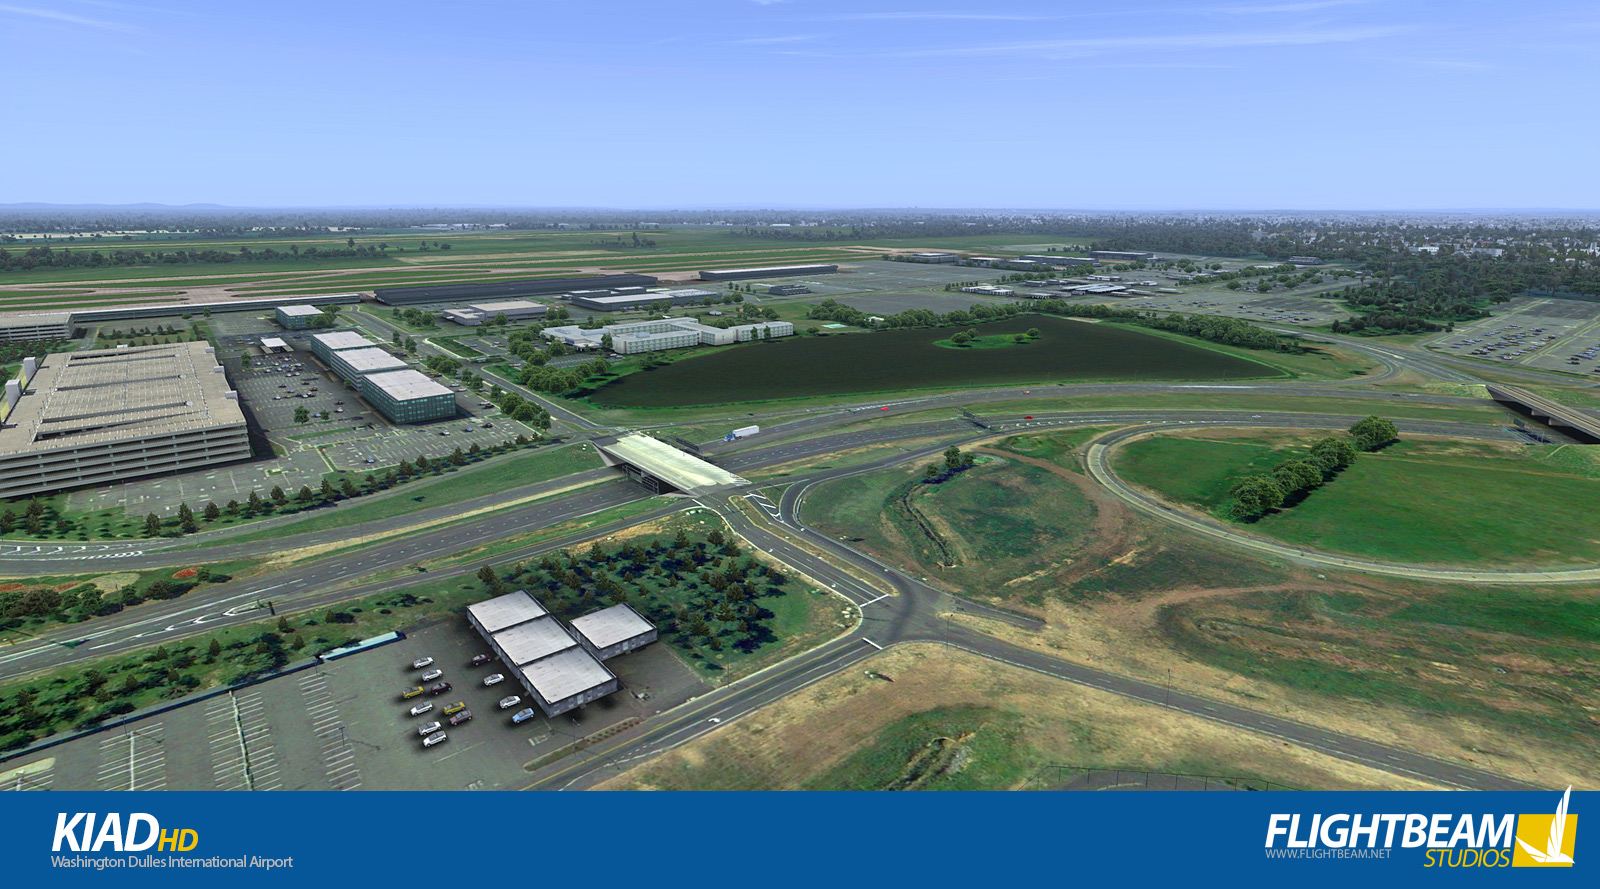 FLIGHTBEAM STUDIOS - KIAD - WASHINGTON DULLES INTERNATIONAL AIRPORT FSX P3D